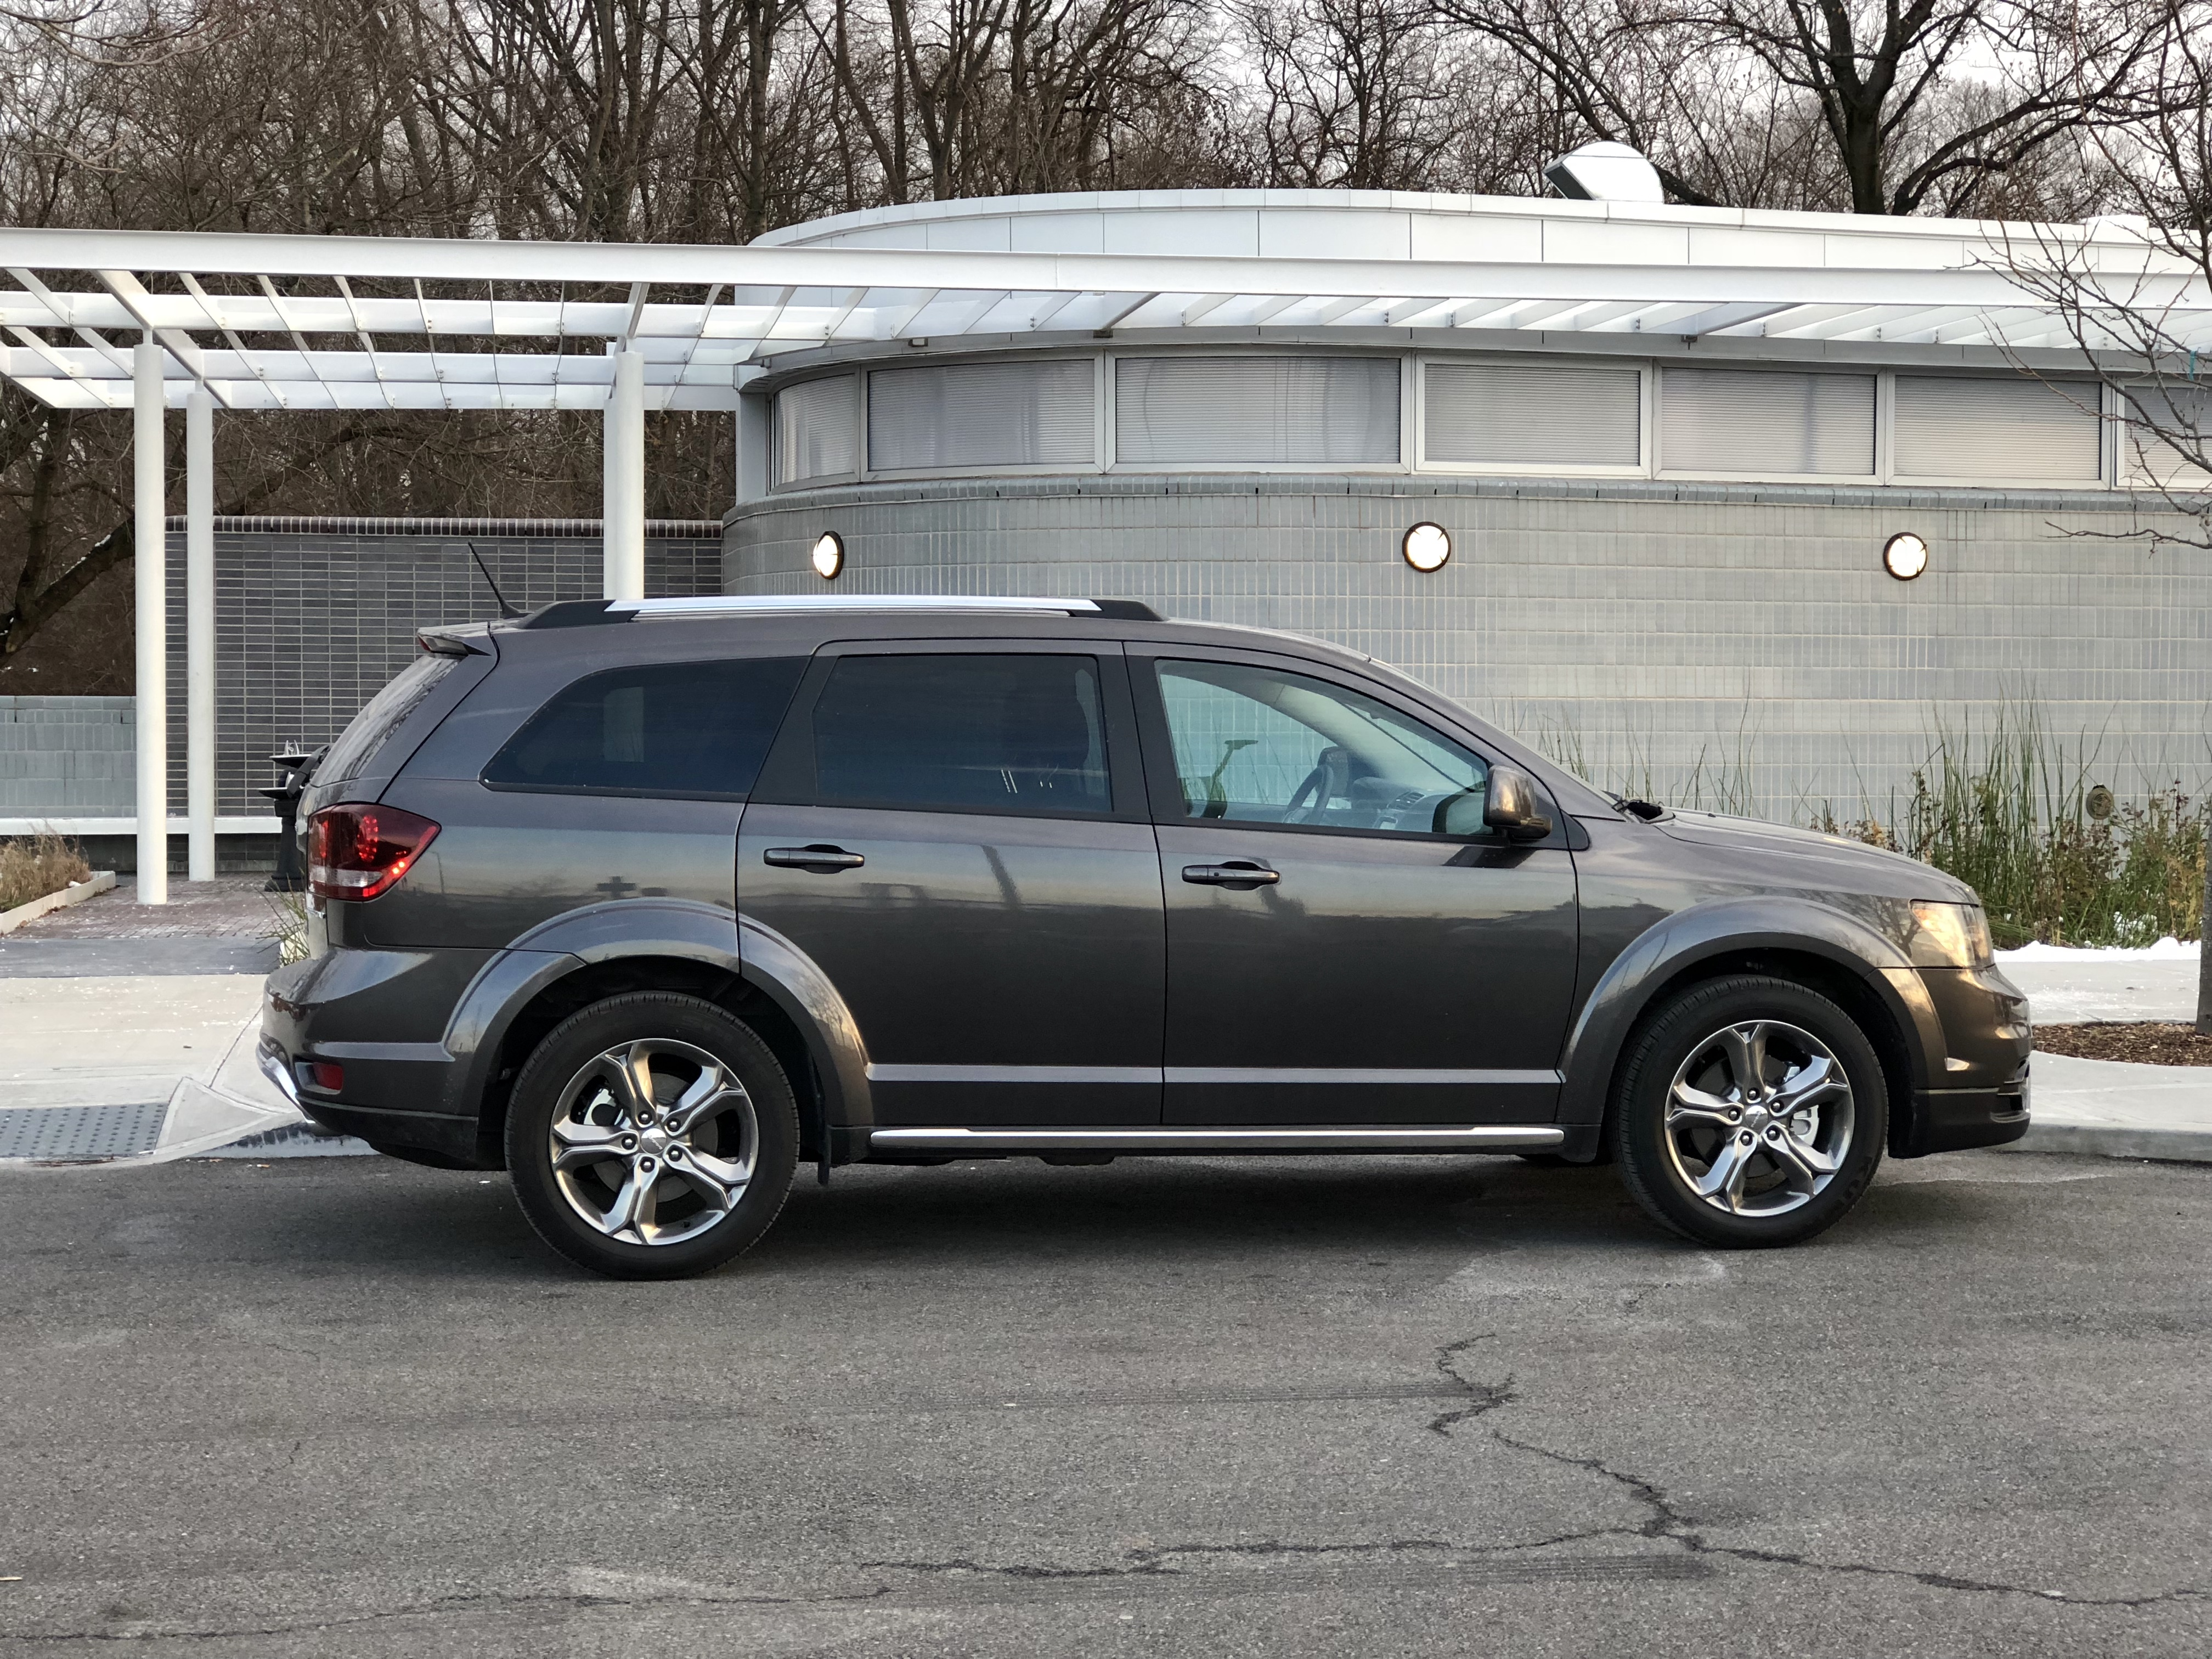 review and test drive 2017 dodge journey crossroad plus awd frequent business traveler. Black Bedroom Furniture Sets. Home Design Ideas